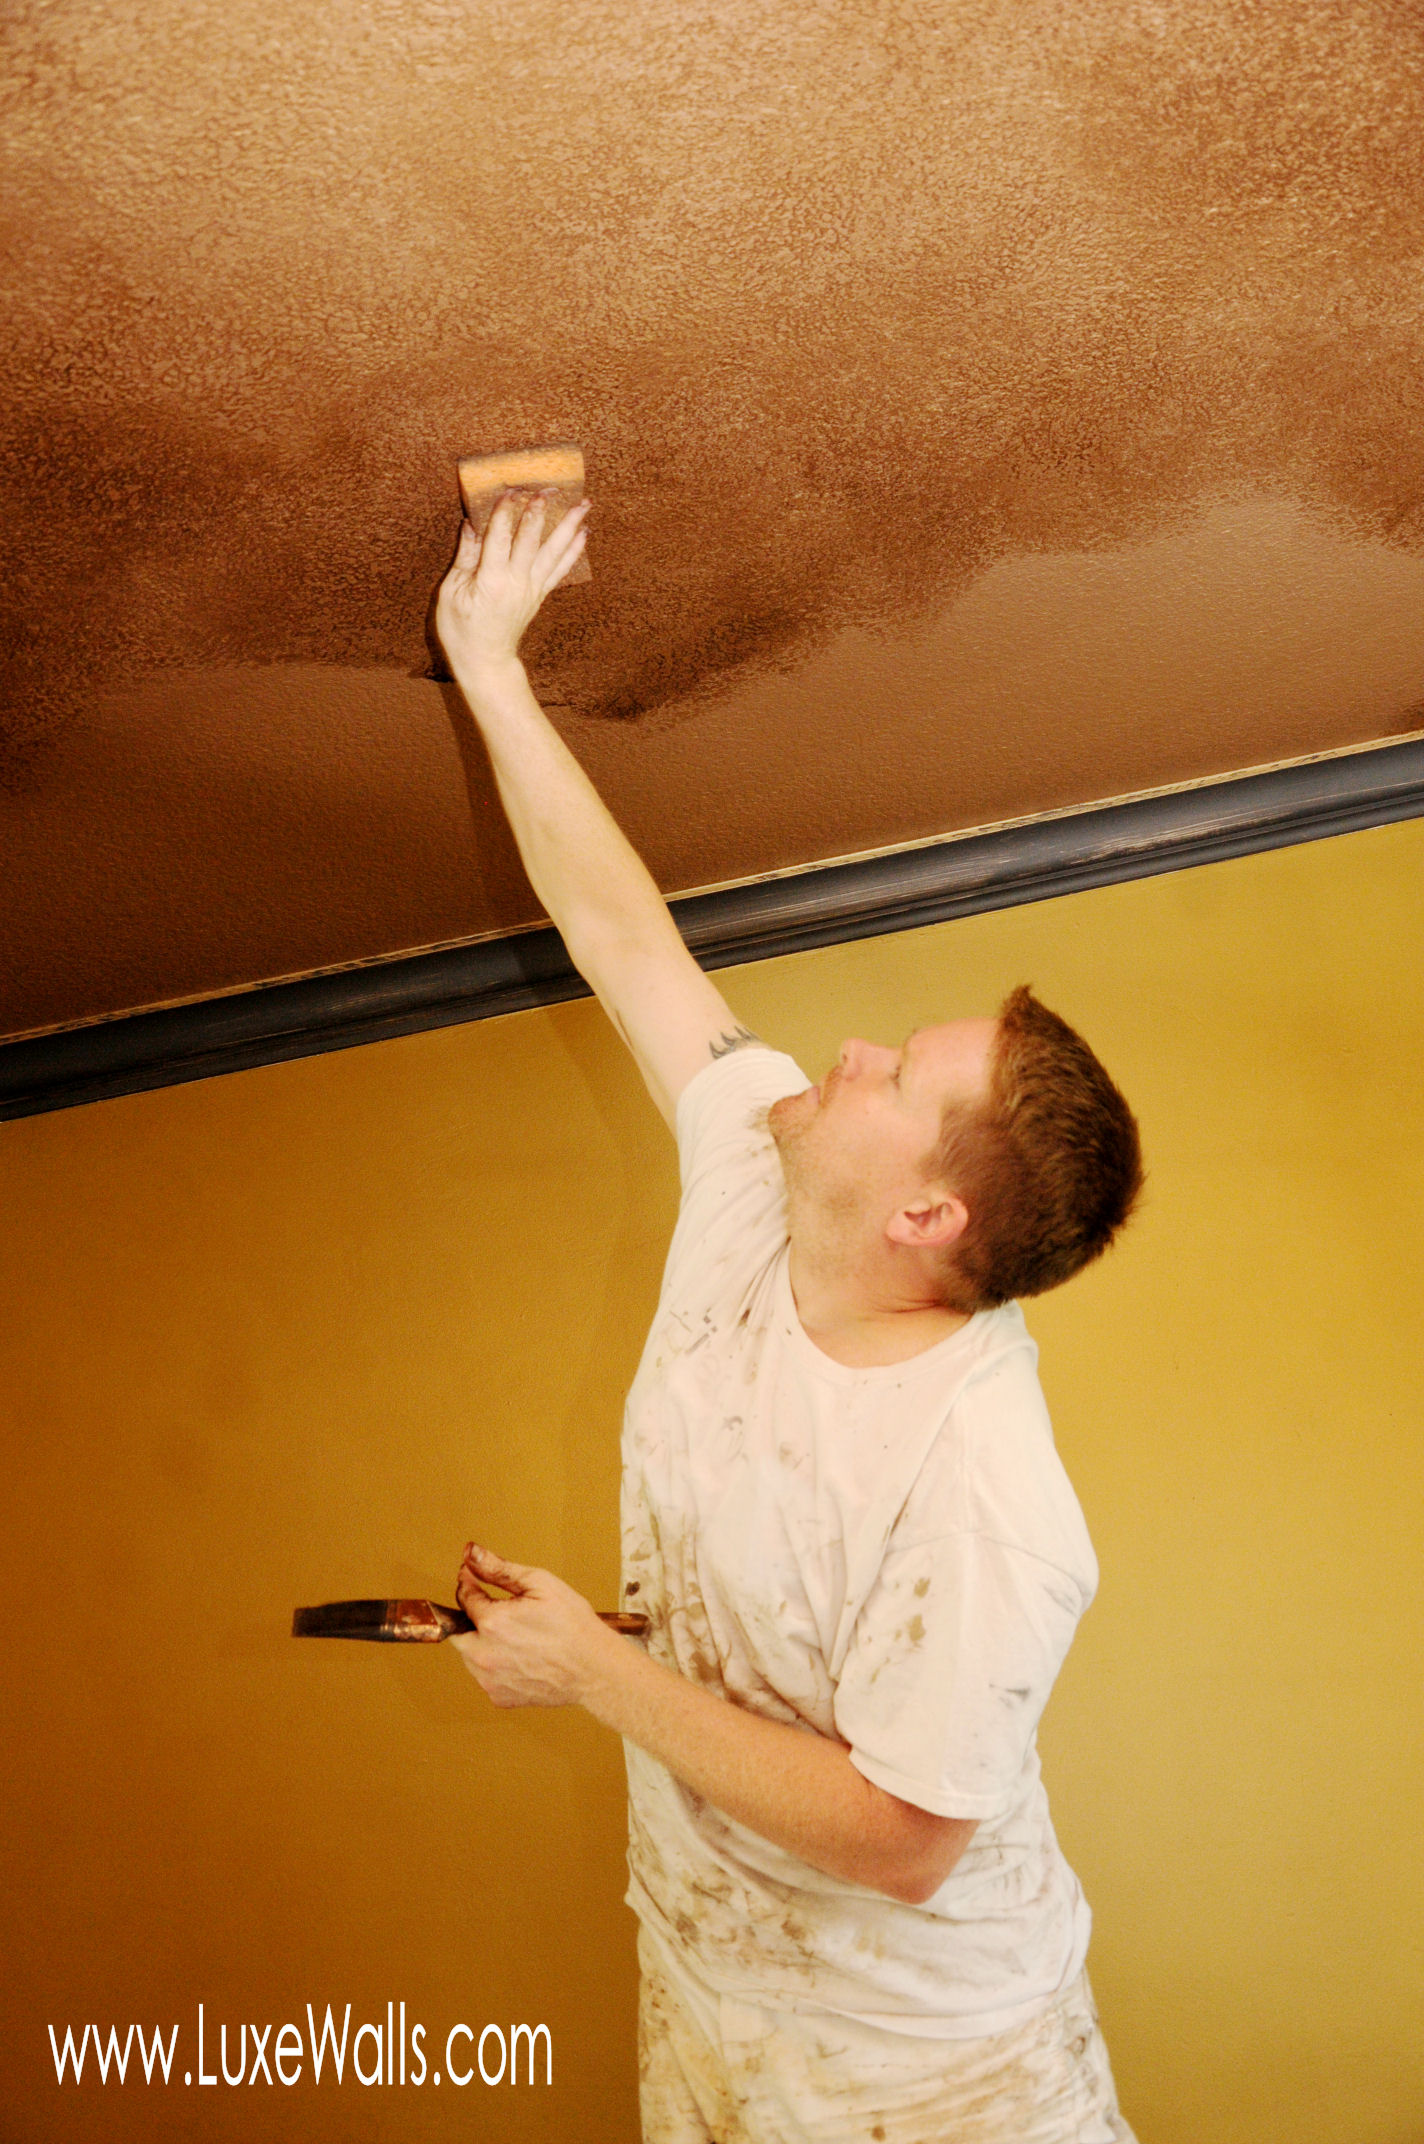 Carl glazing the dining room ceiling